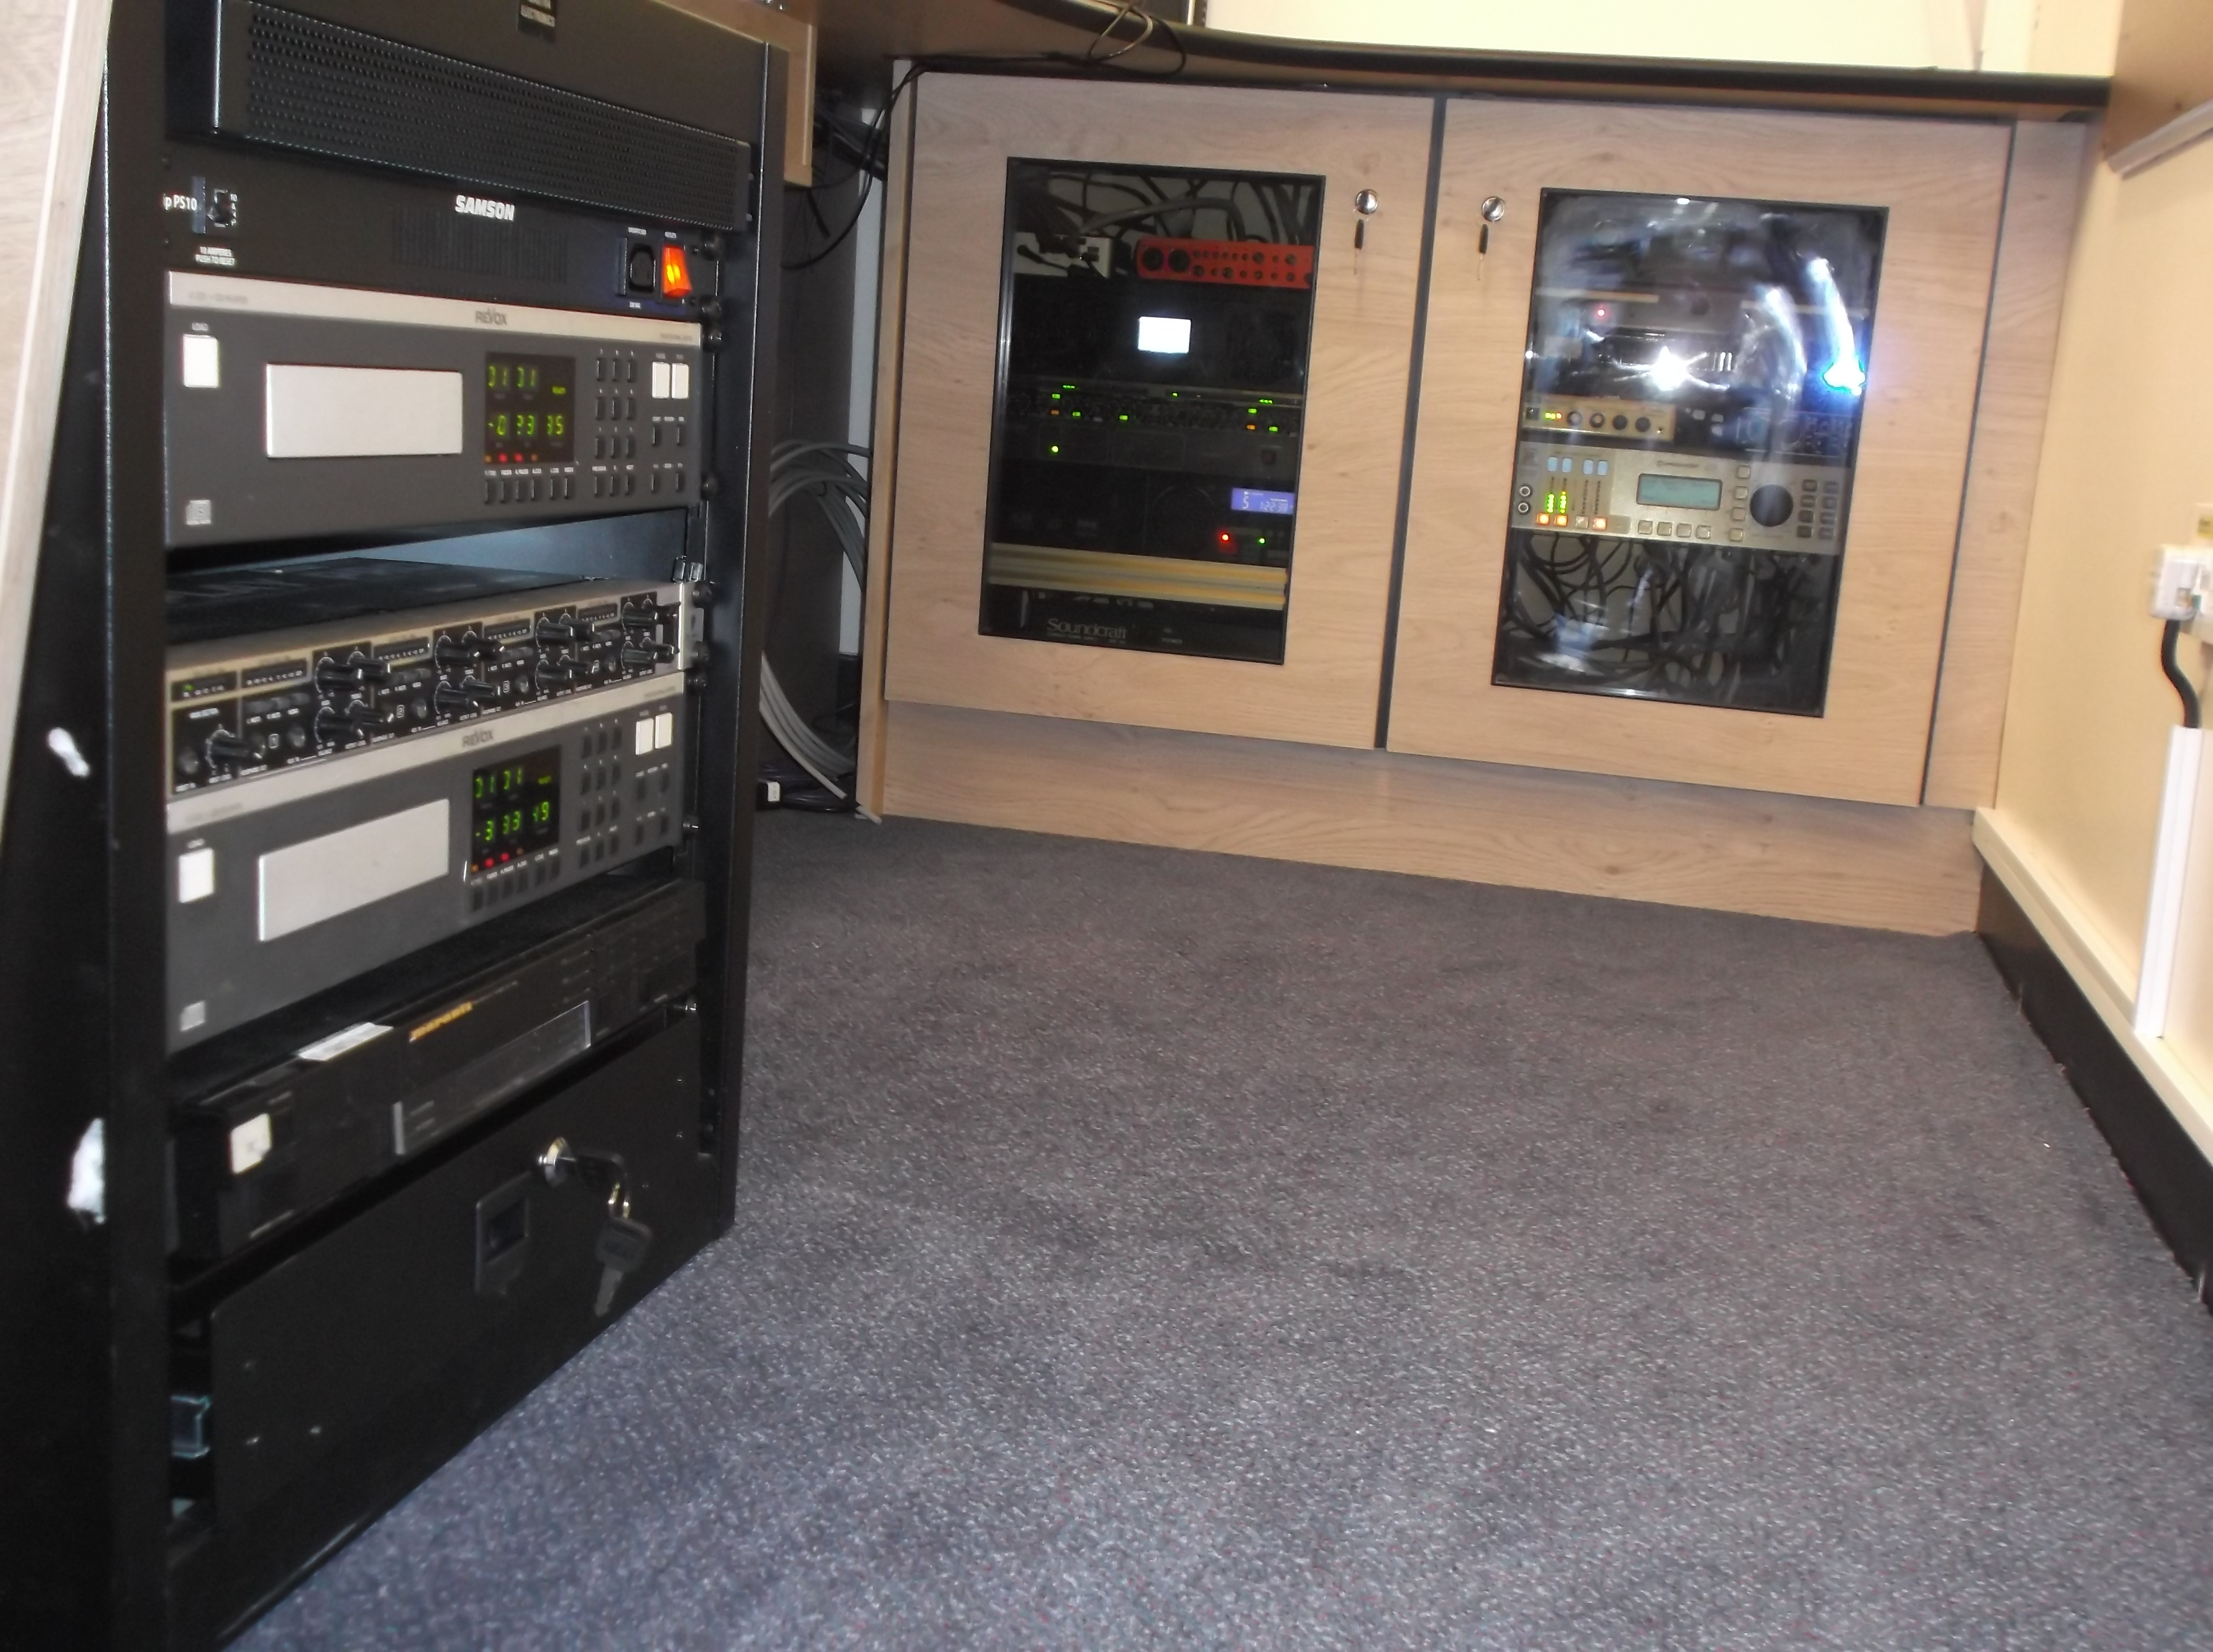 Rack Cabinets - Showing Old Equipment Mounts